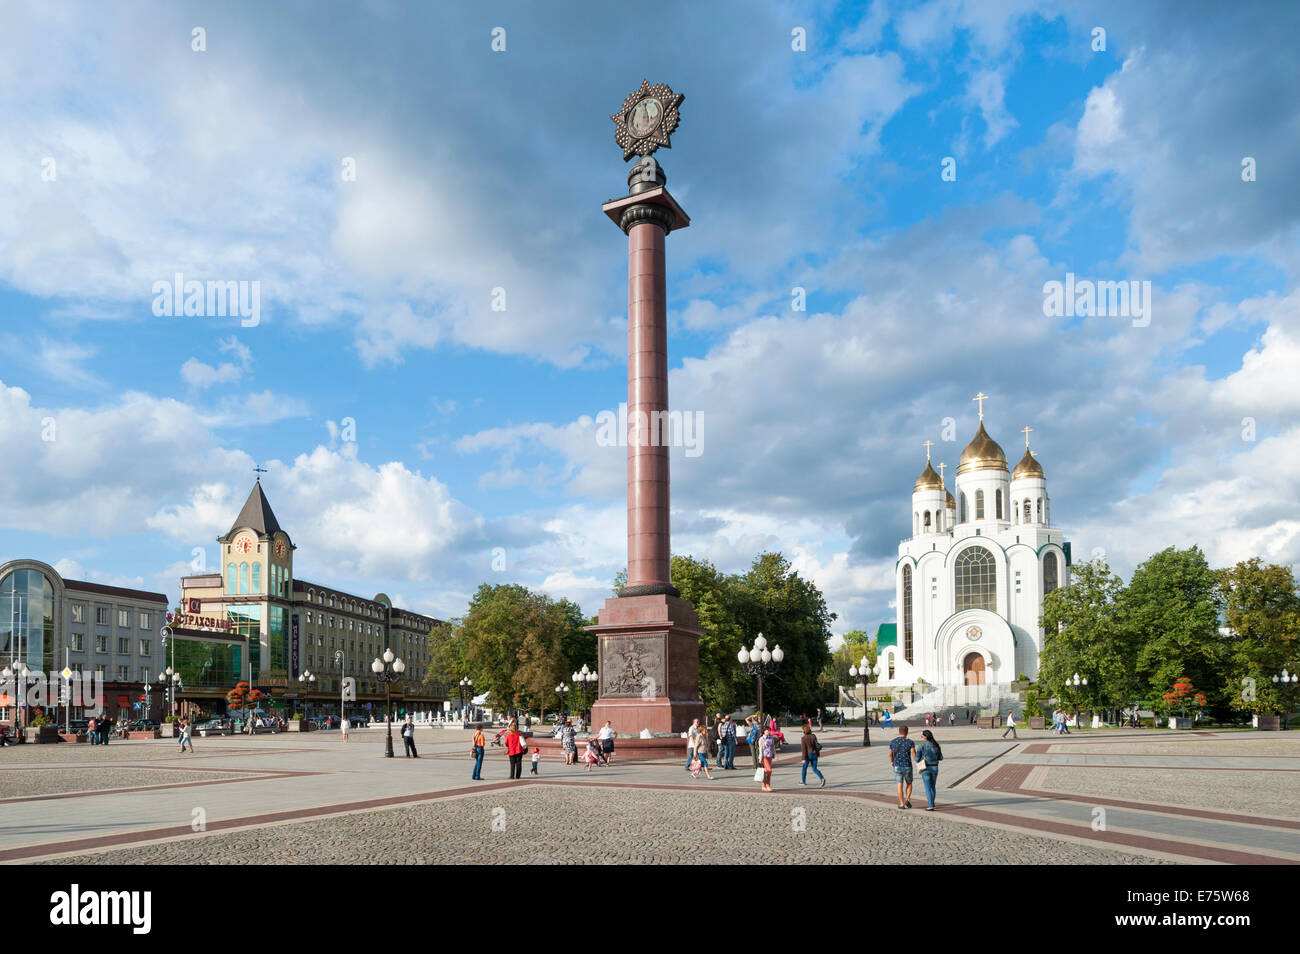 Victory Column with a stylized medal, World War II, Victory Square, Russian Orthodox Cathedral at the back, Centralnij - Stock Image